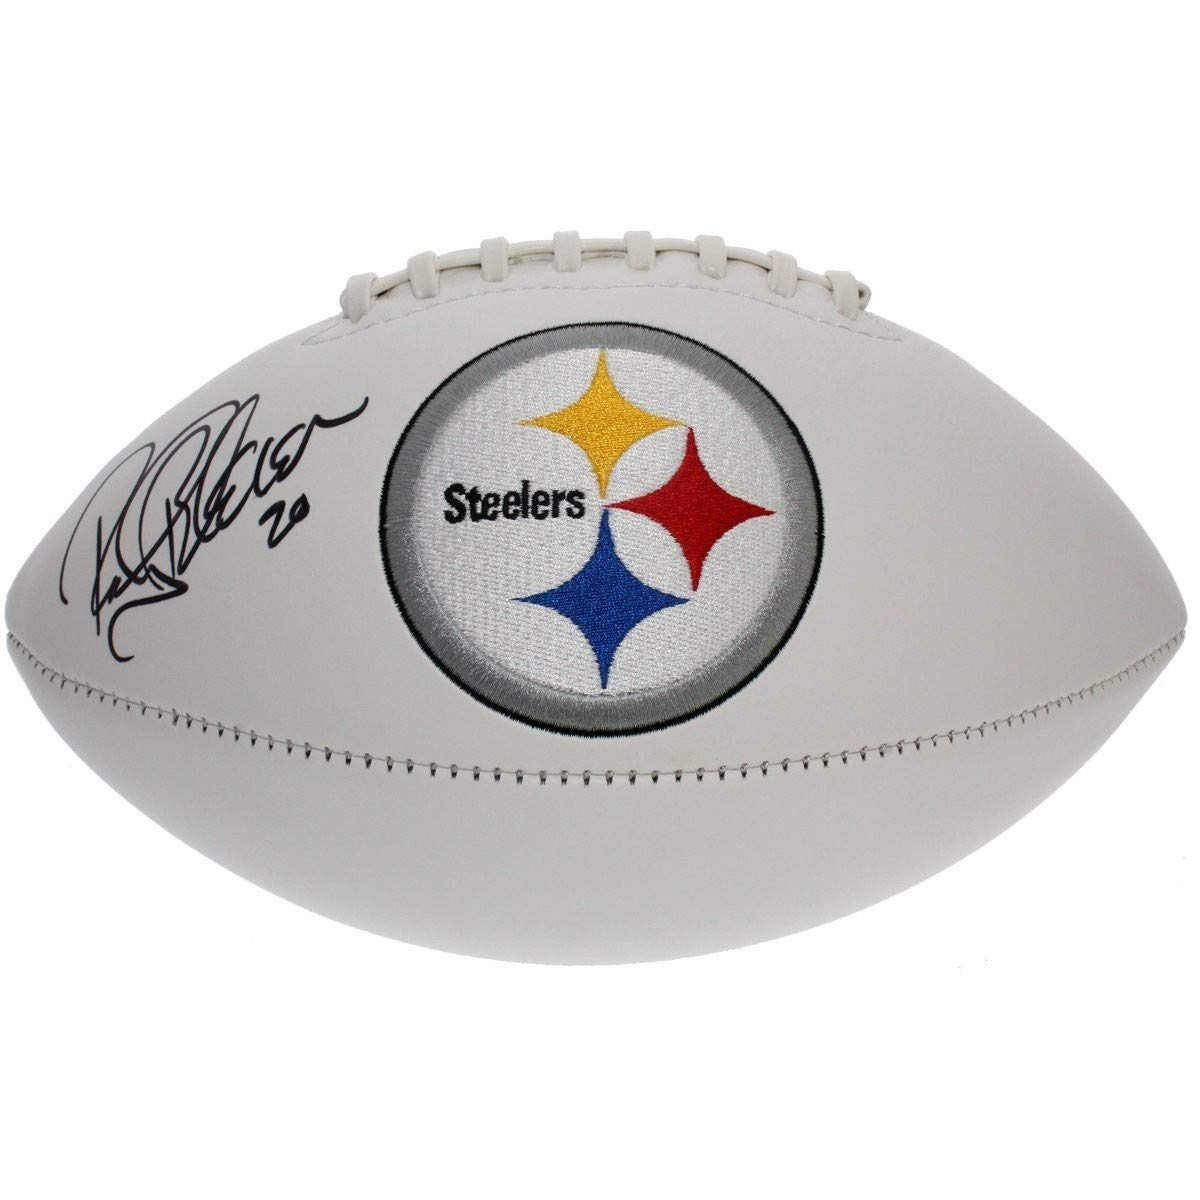 Rocky Bleier Autographed Signed Pittsburgh Steelers White Panel Football - JSA Certified Authentic